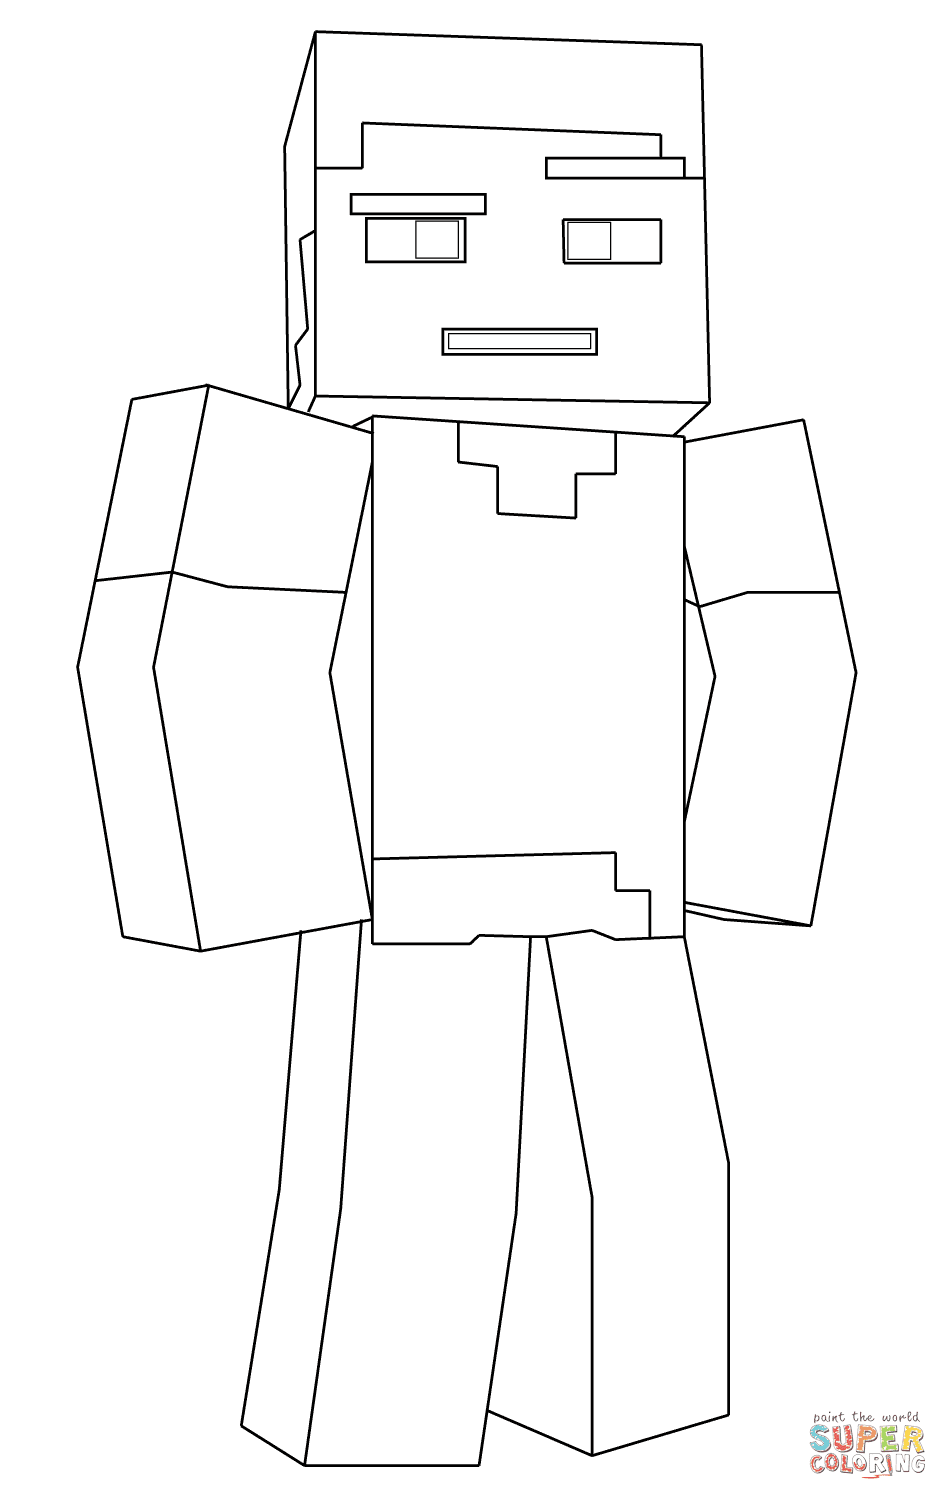 Printable Coloring Pages For Kids Minecraft Drawing With Crayons